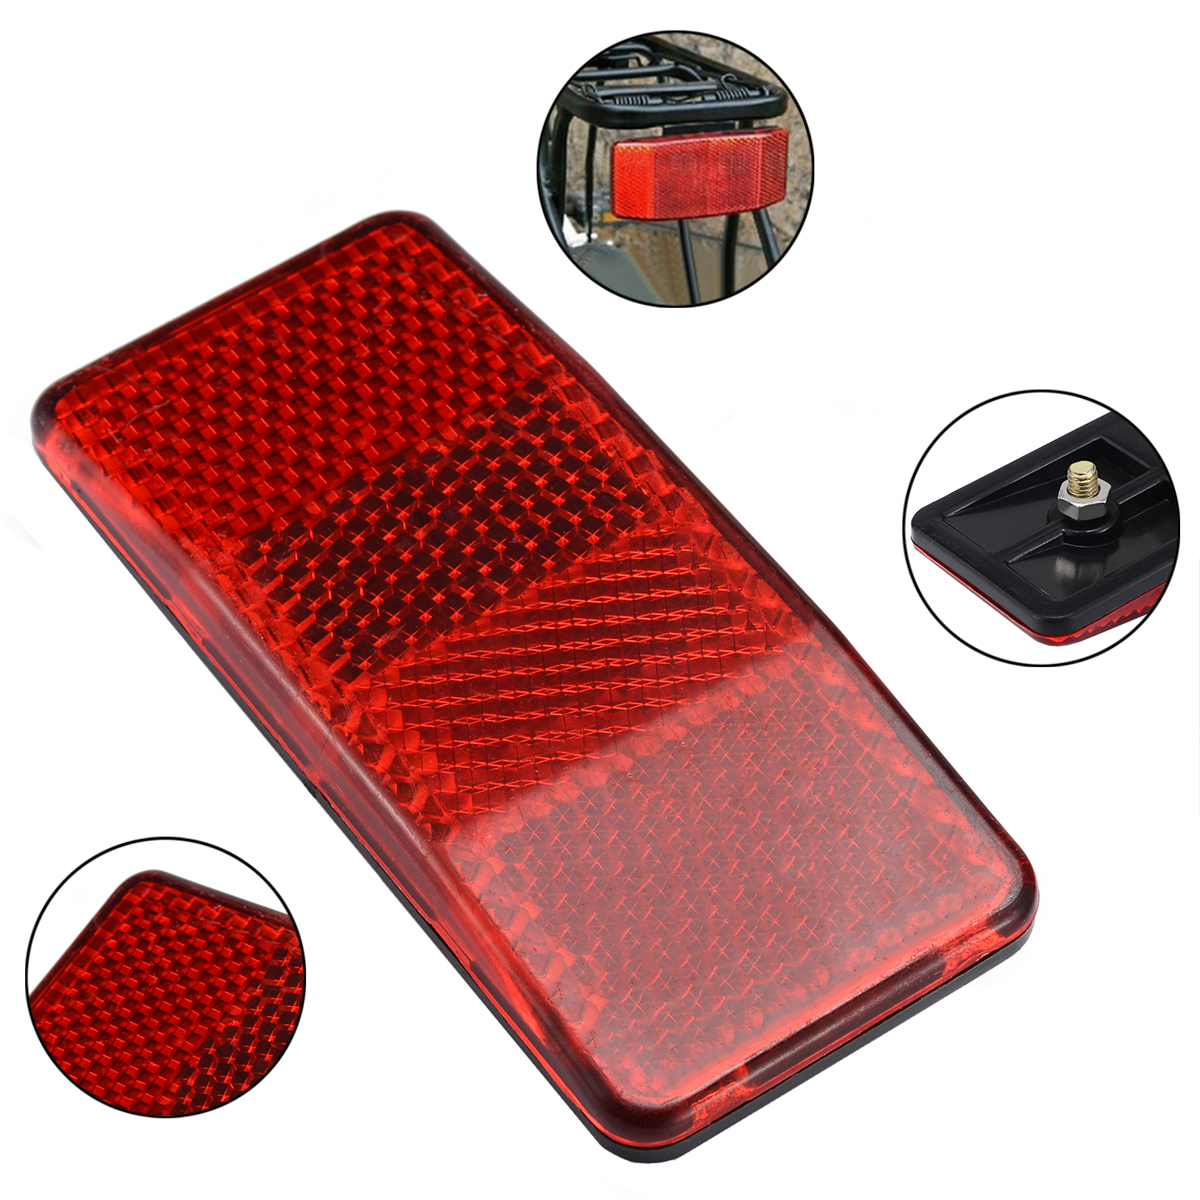 1Pcs Bike Reflector Bicycle Bike Mount Bike Cycling Safety Red Warning Reflect Light For Disc Rear Carrier Pannier Rack